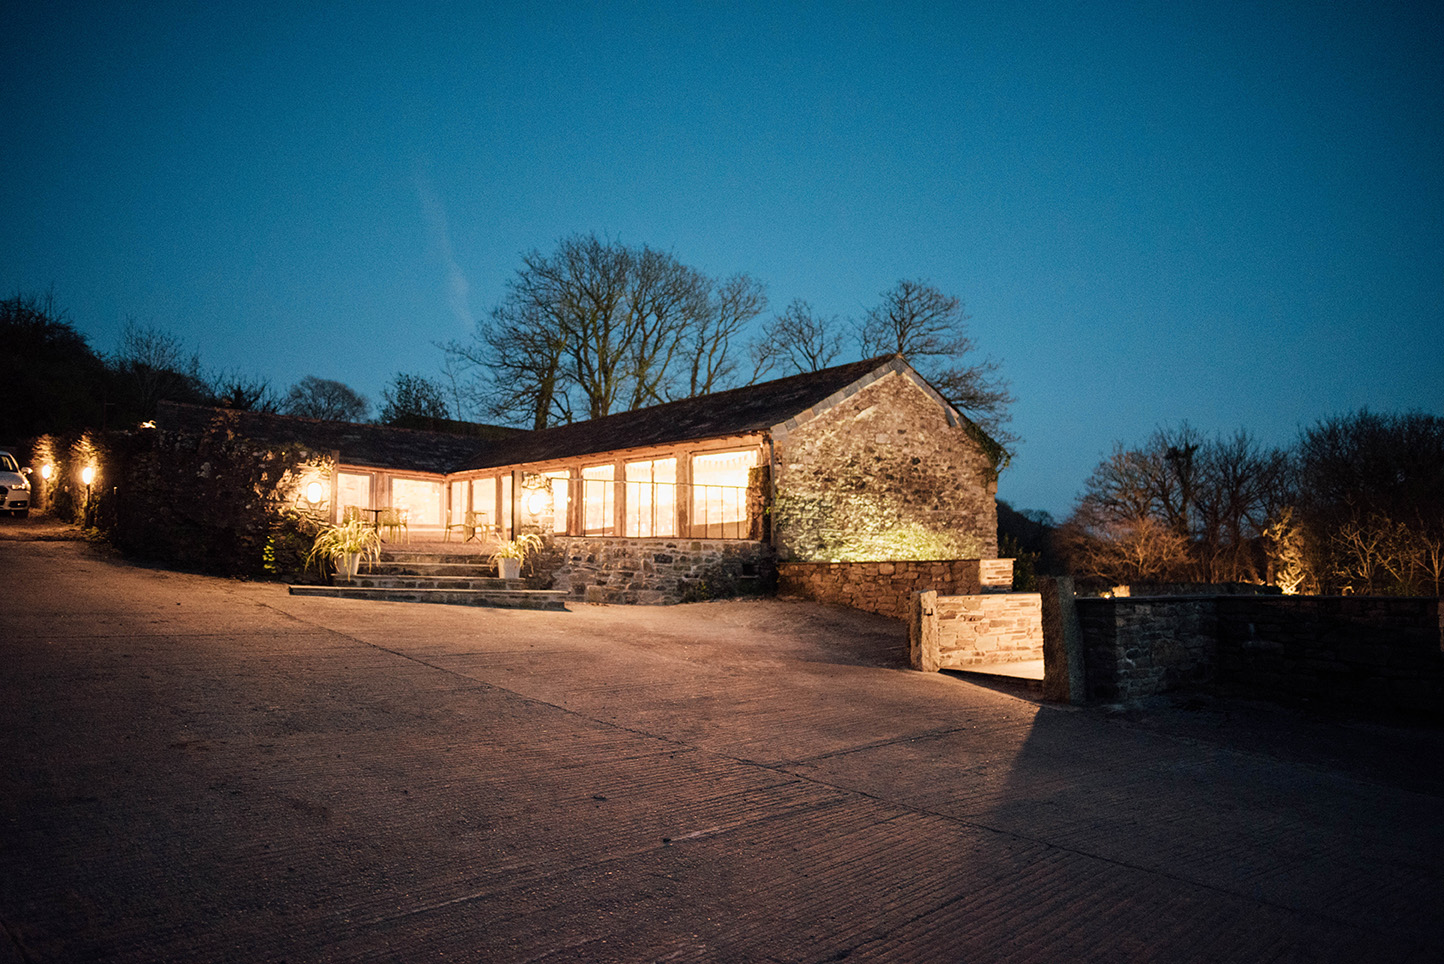 The outside of the Cowyard Barn rustic party and reception space for weddings at Pengenna Manor Cornwall wedding venue.jpg